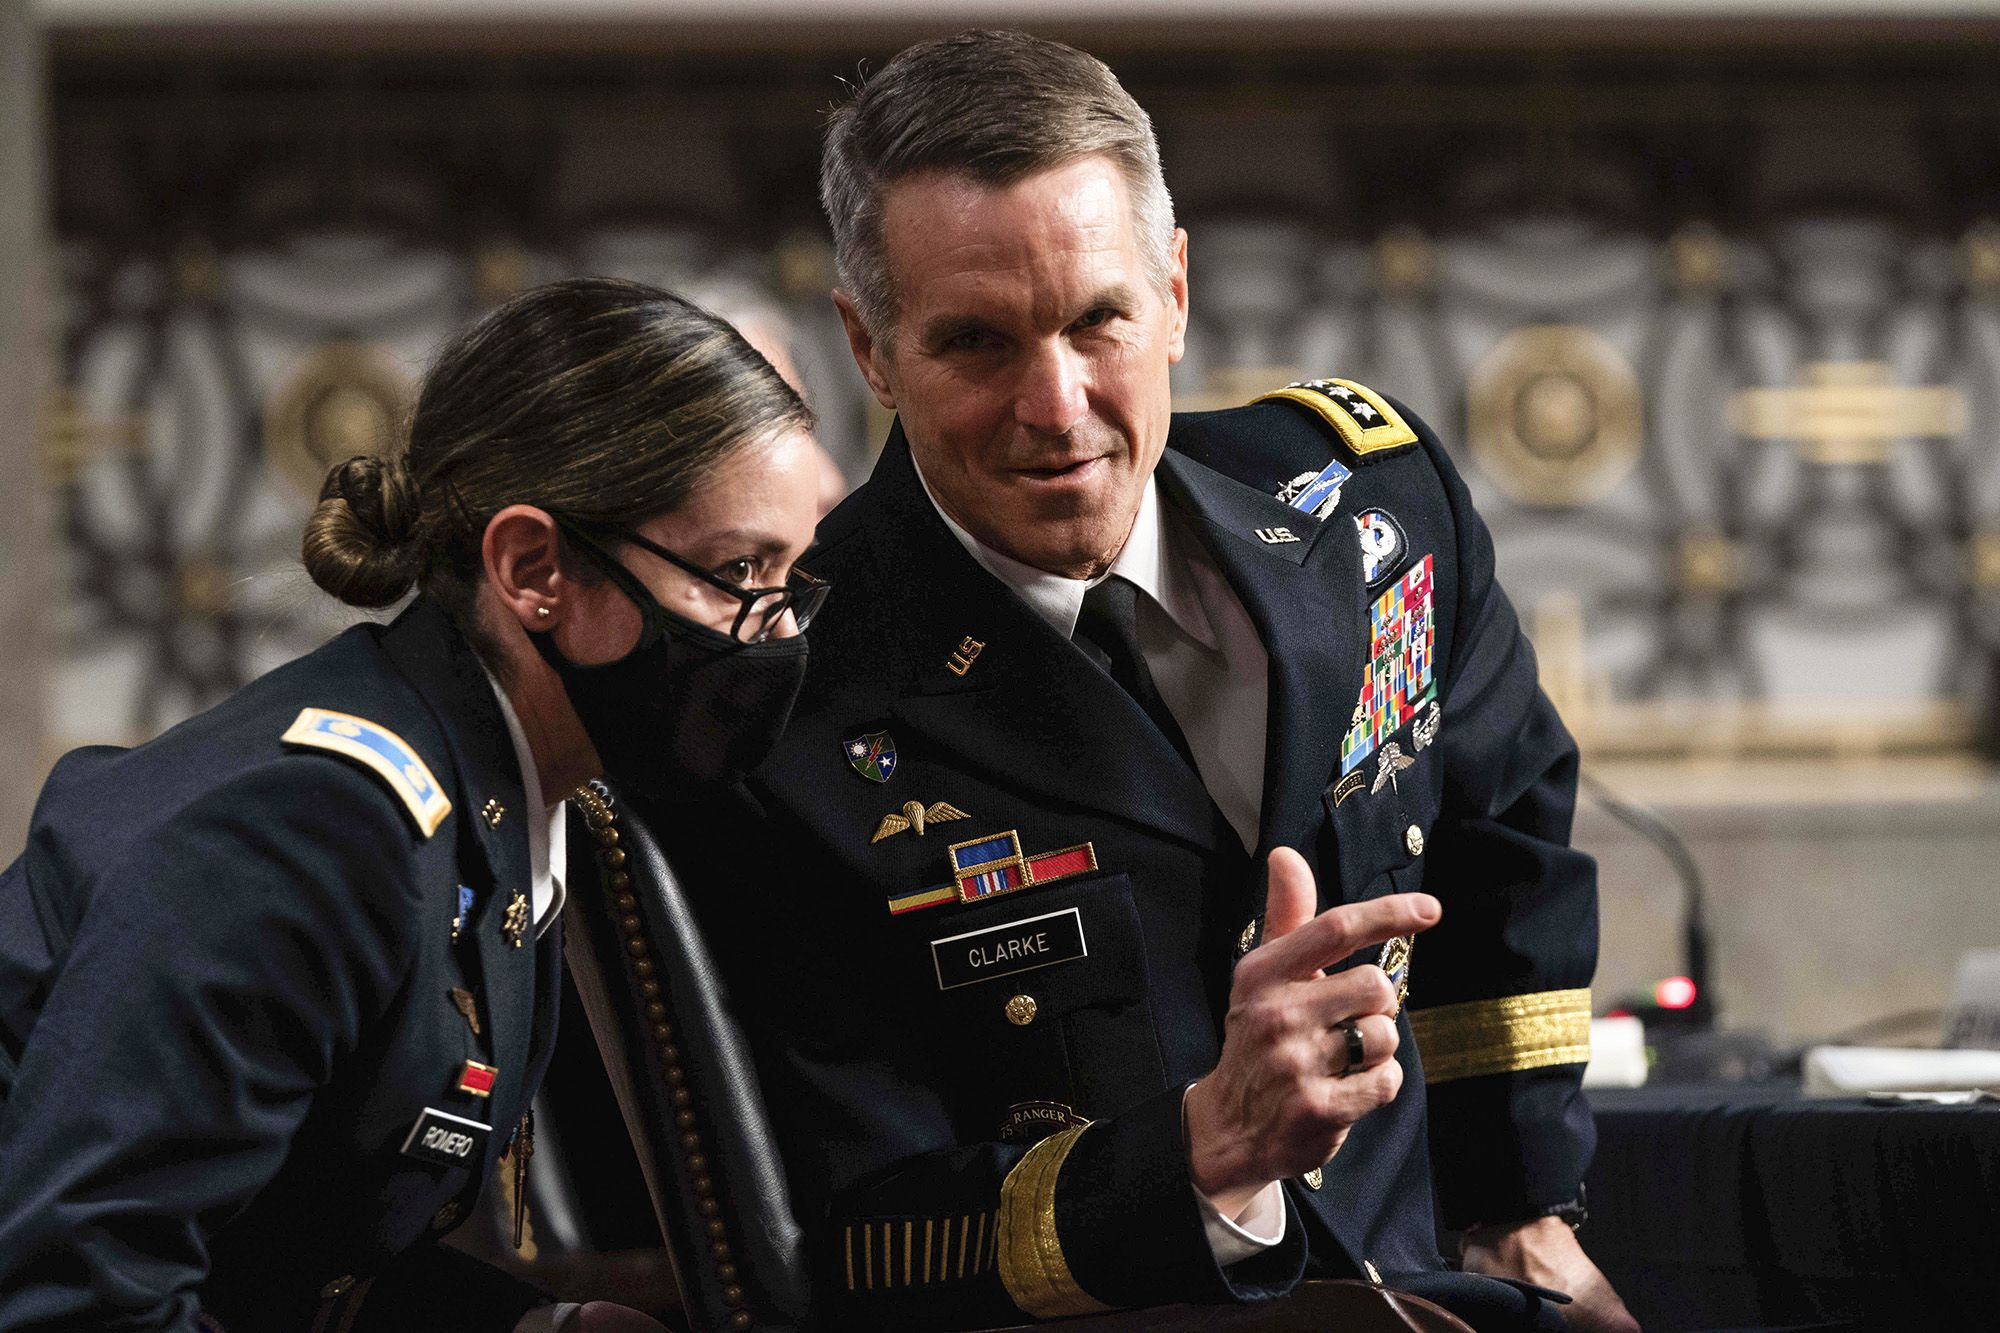 Special Operations Command chief: Afghans need US troops to counter Taliban